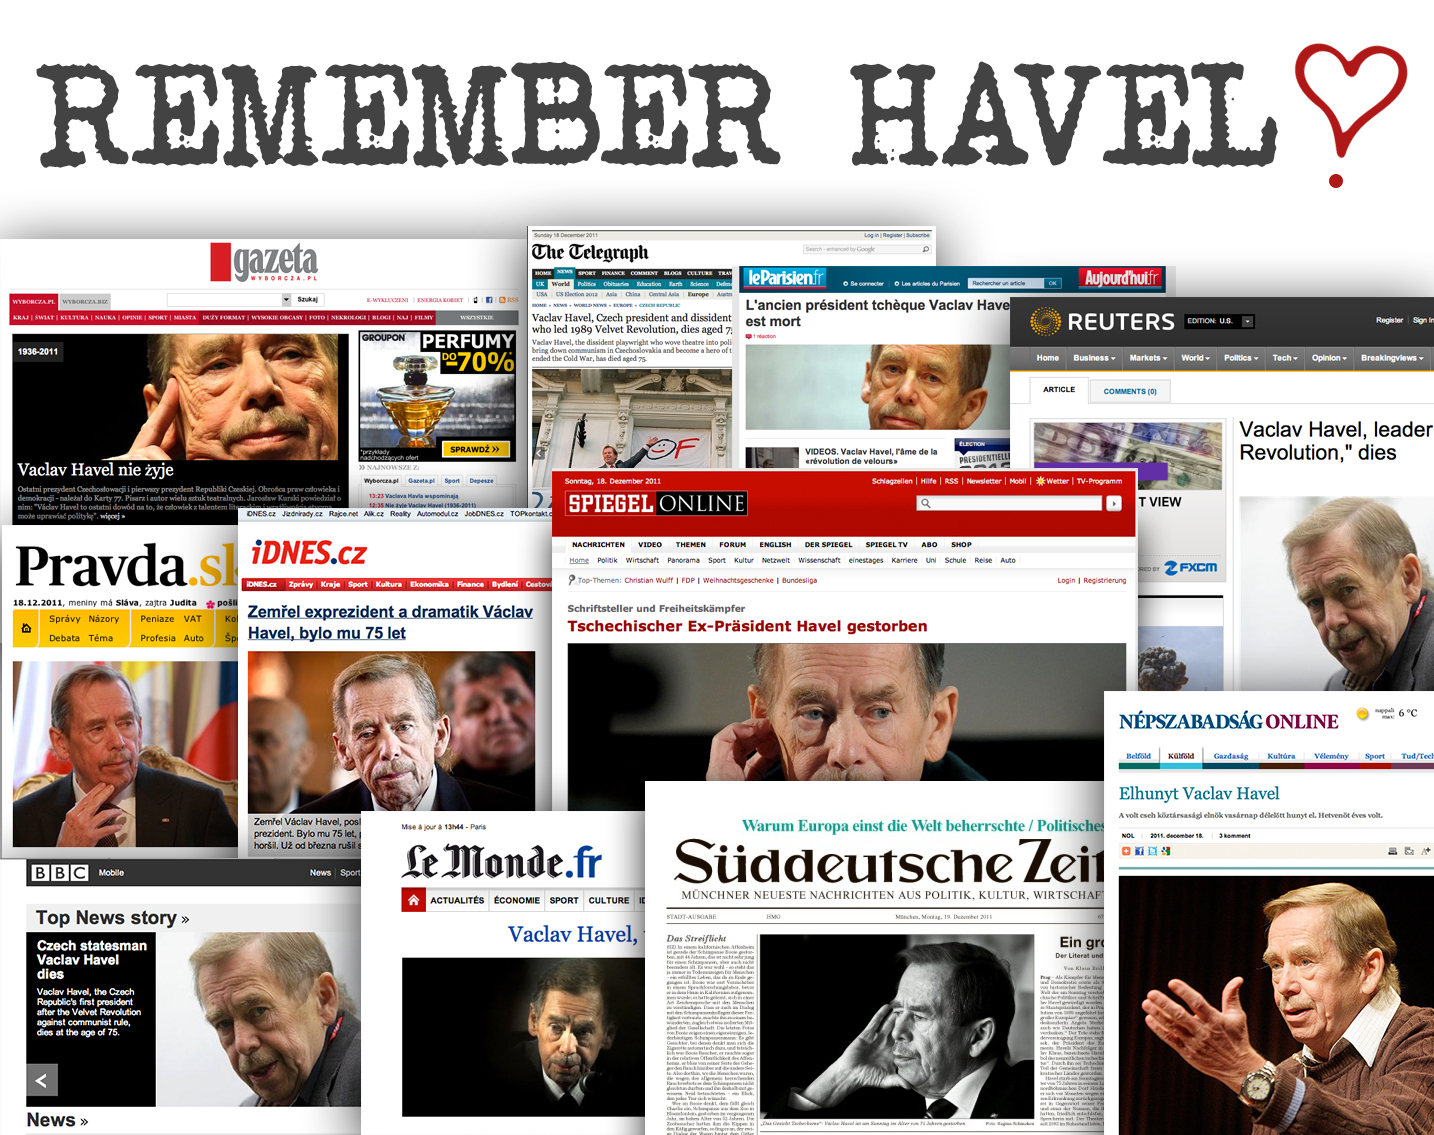 Remember Havel